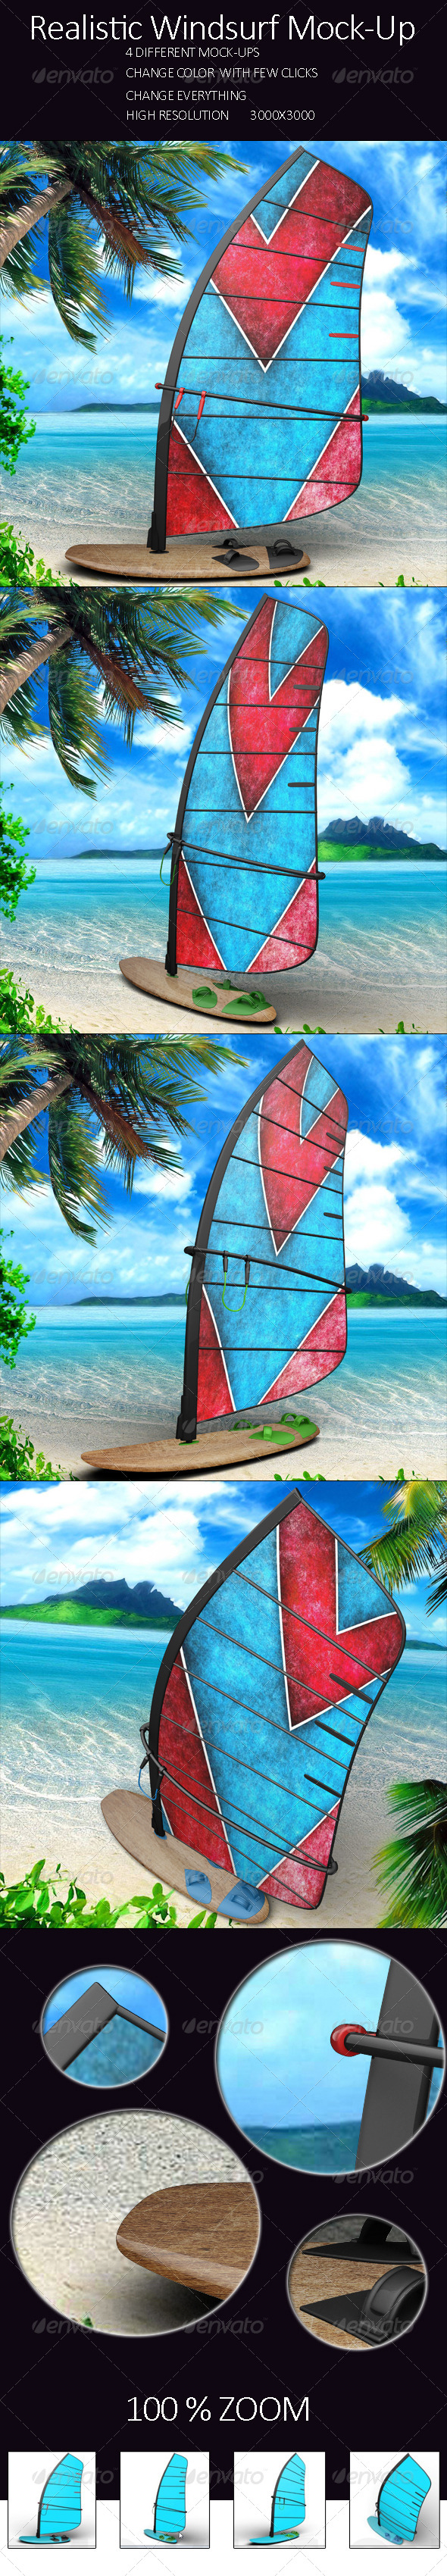 GraphicRiver Realistic Windsurf Mock Up 7955738